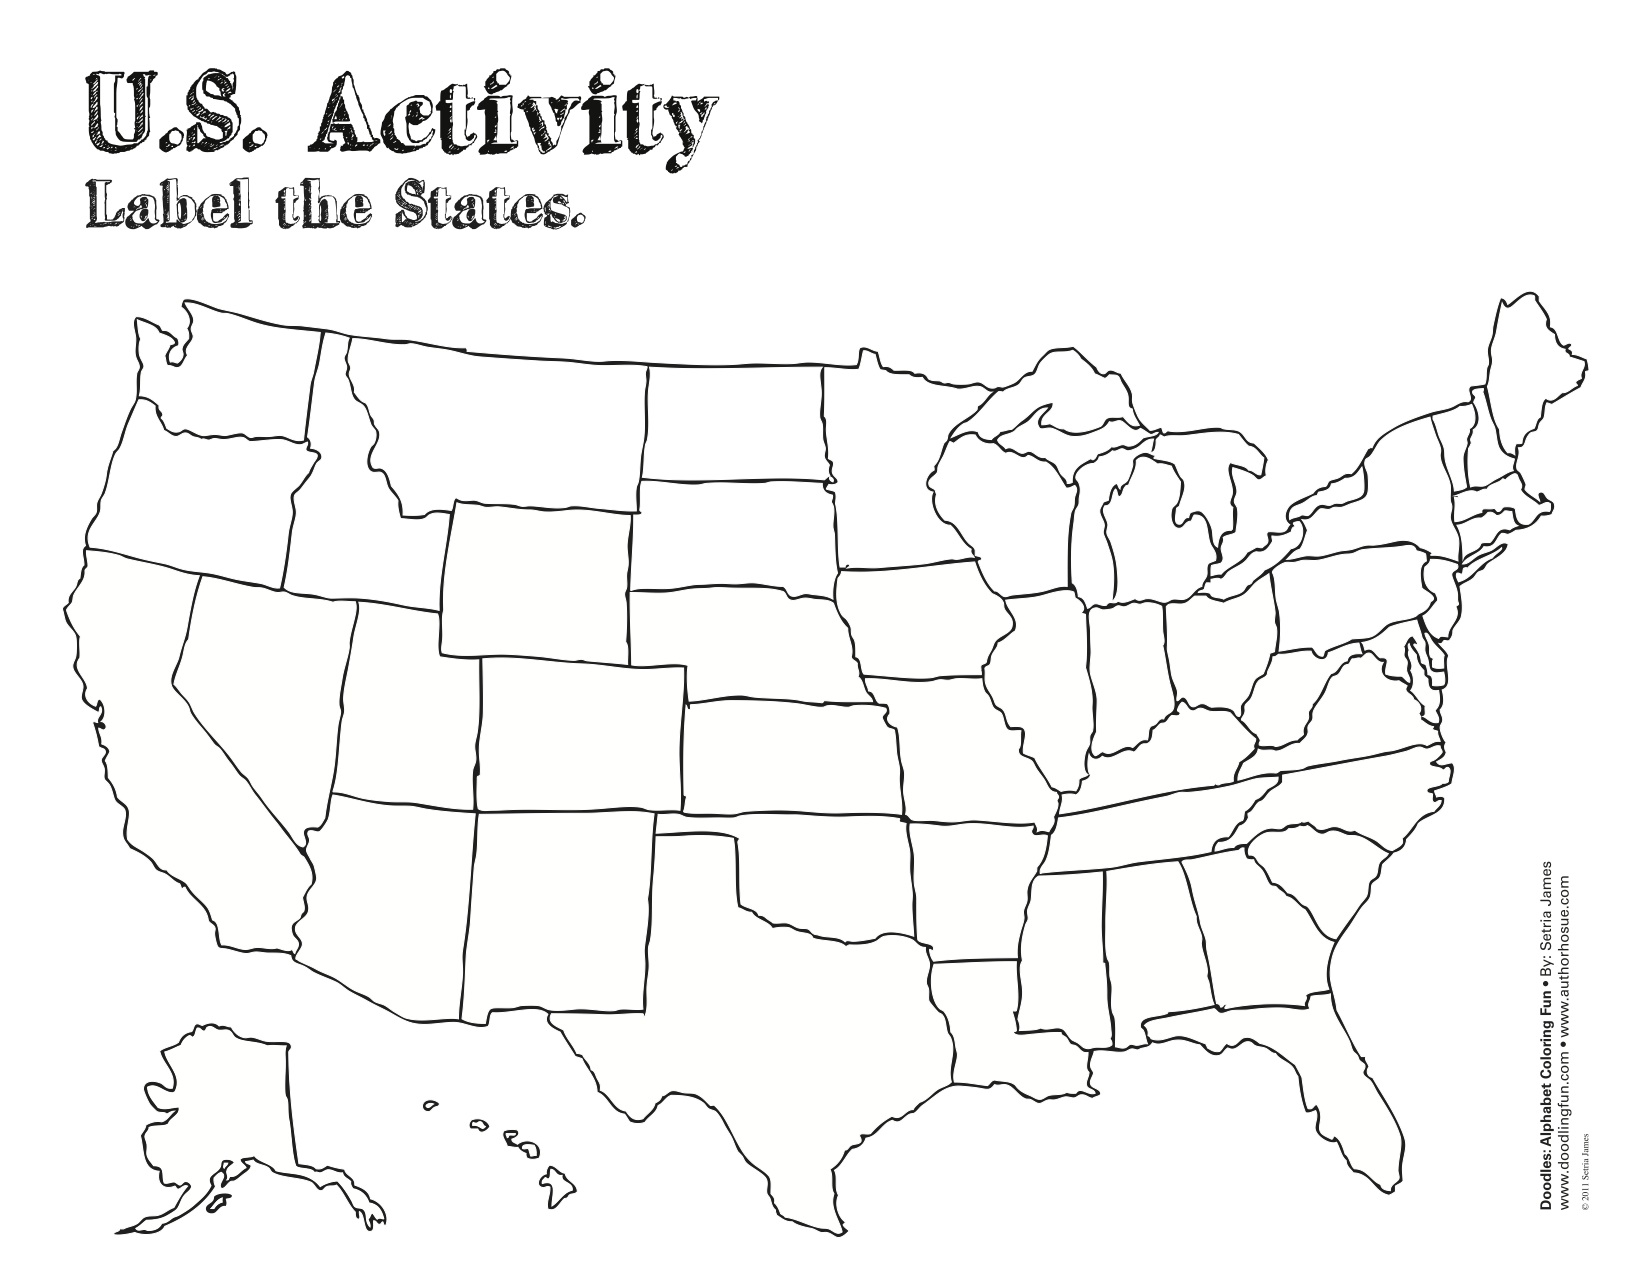 USA Map With State Abbreviations In Adobe Illustrator And Online - Printable usa map with state abbreviations